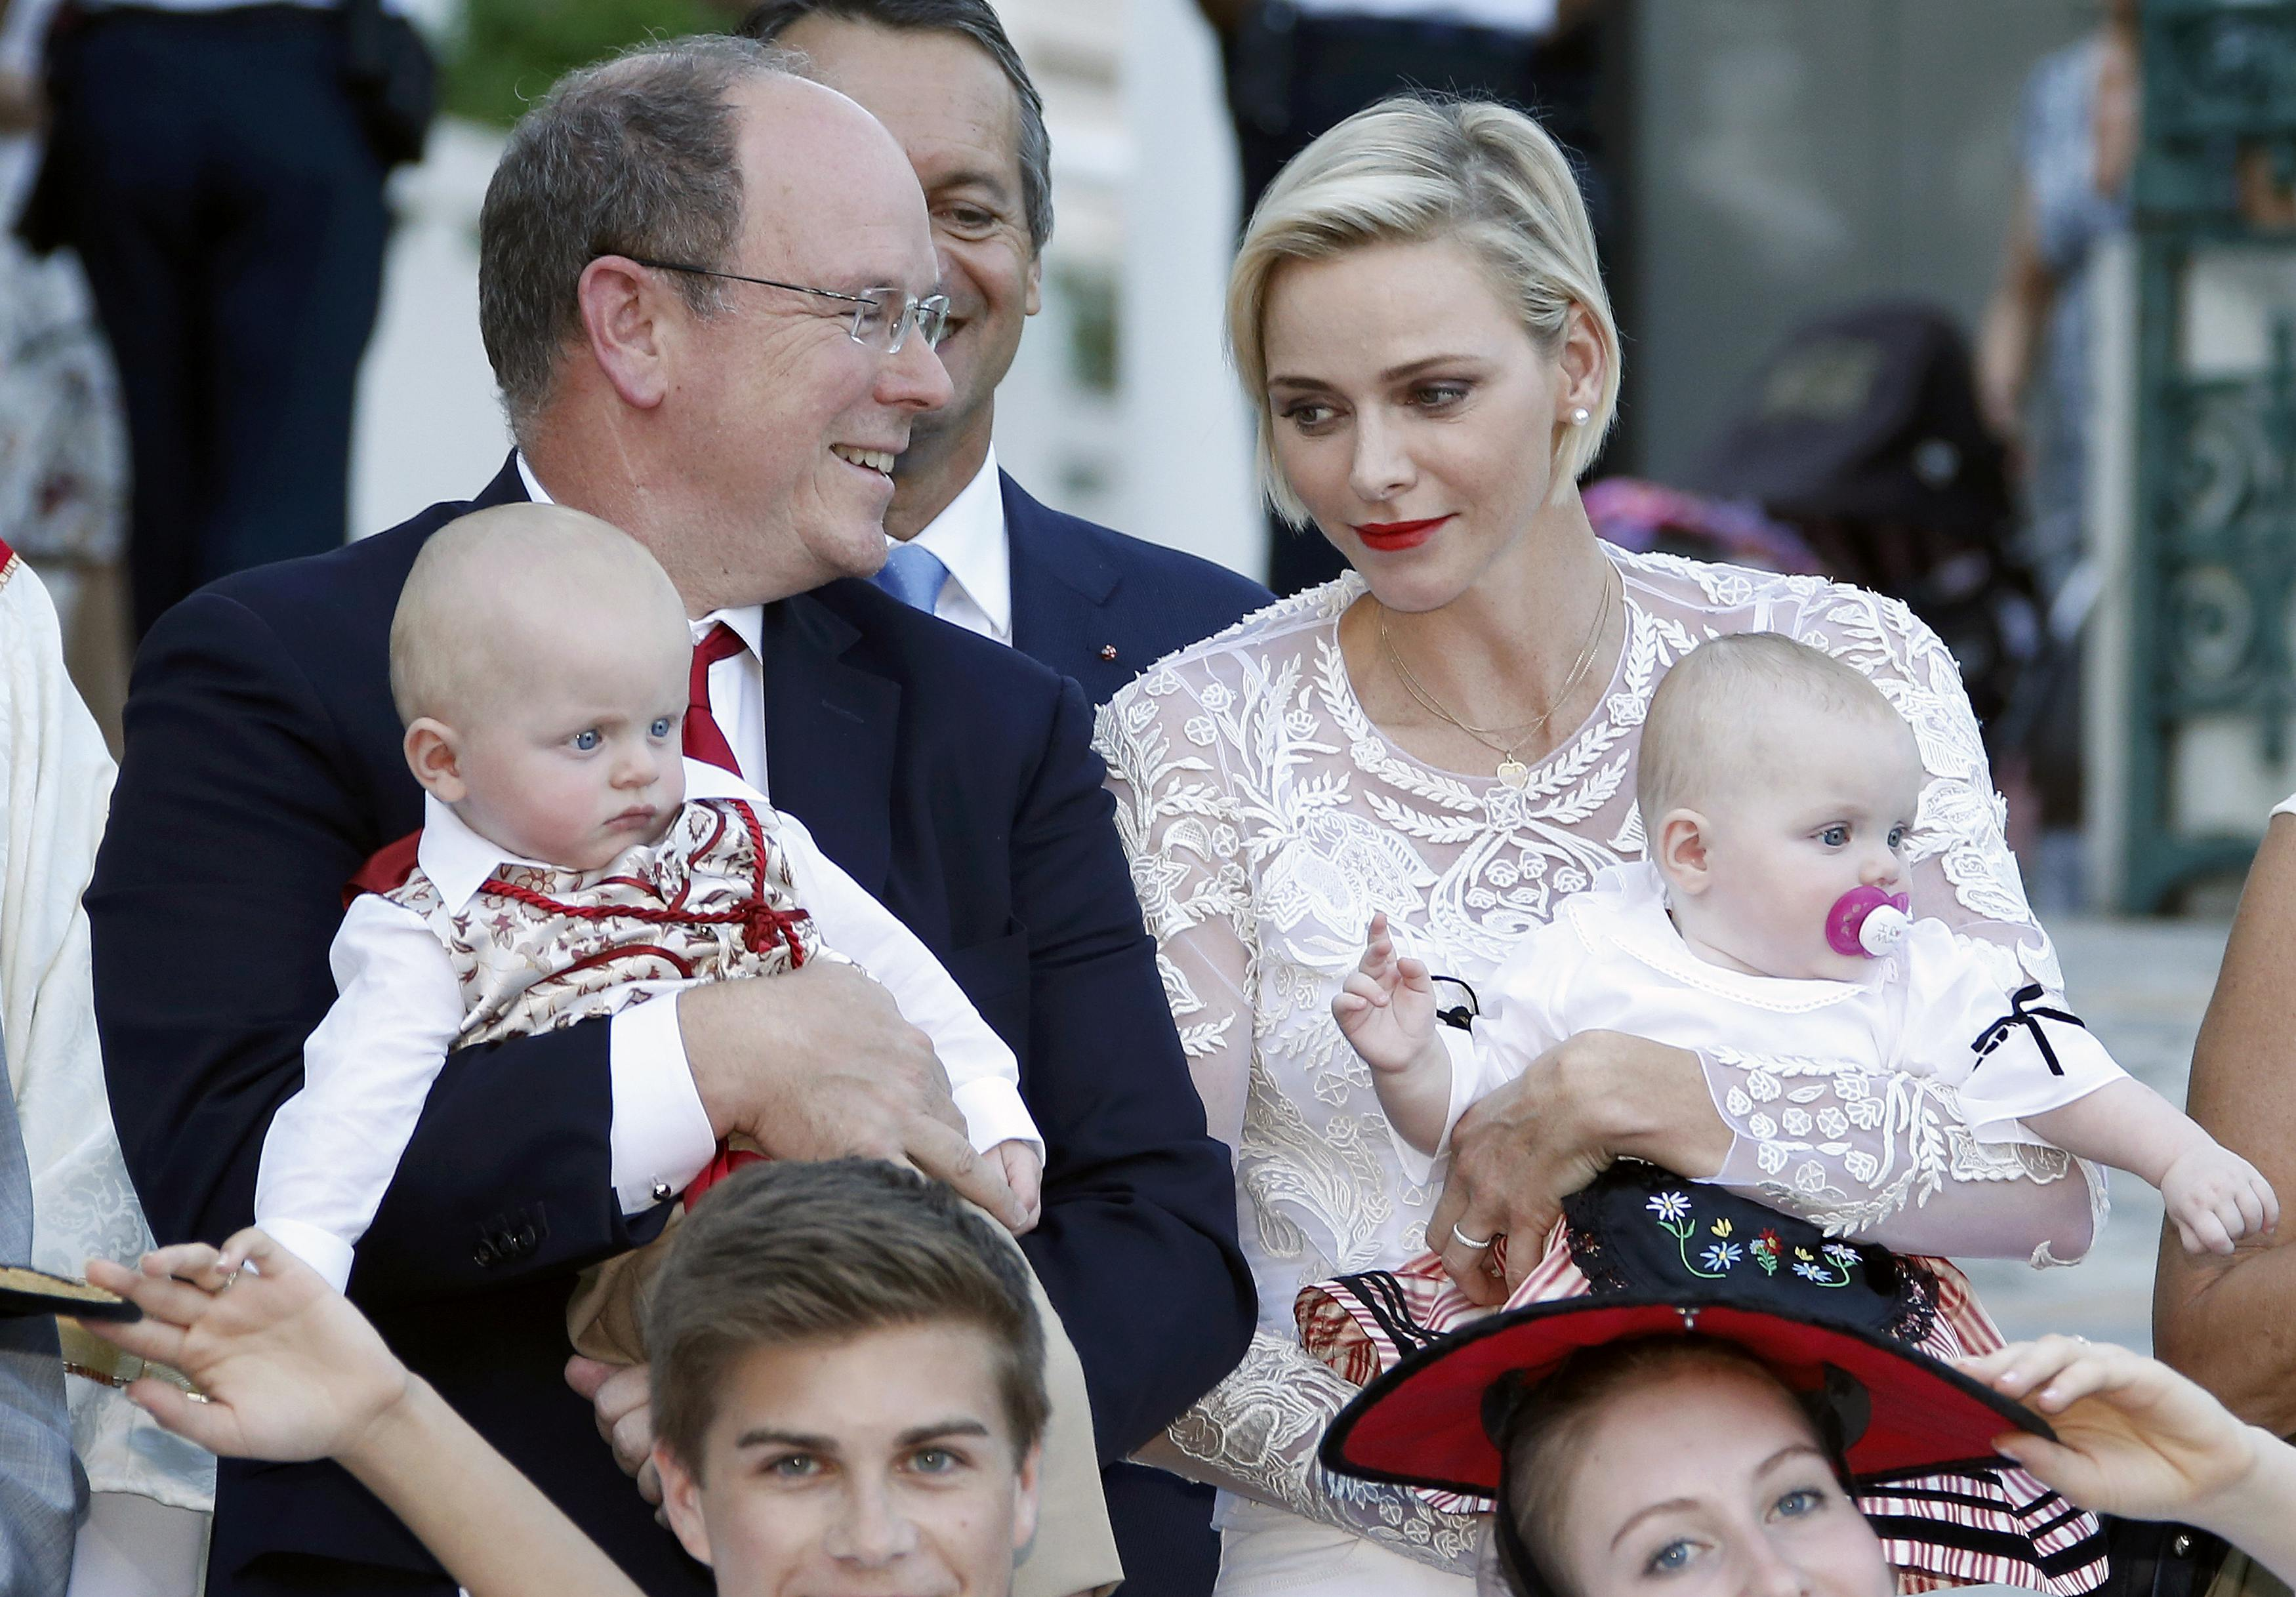 """Prince Albert II  and his wife Princess Charlene of Monaco arrive with their twins, Prince Jacques and Princess Gabriella, to take part in the traditional """"Pique Nique Monegasque"""" (Monaco's picnic) in Monaco"""